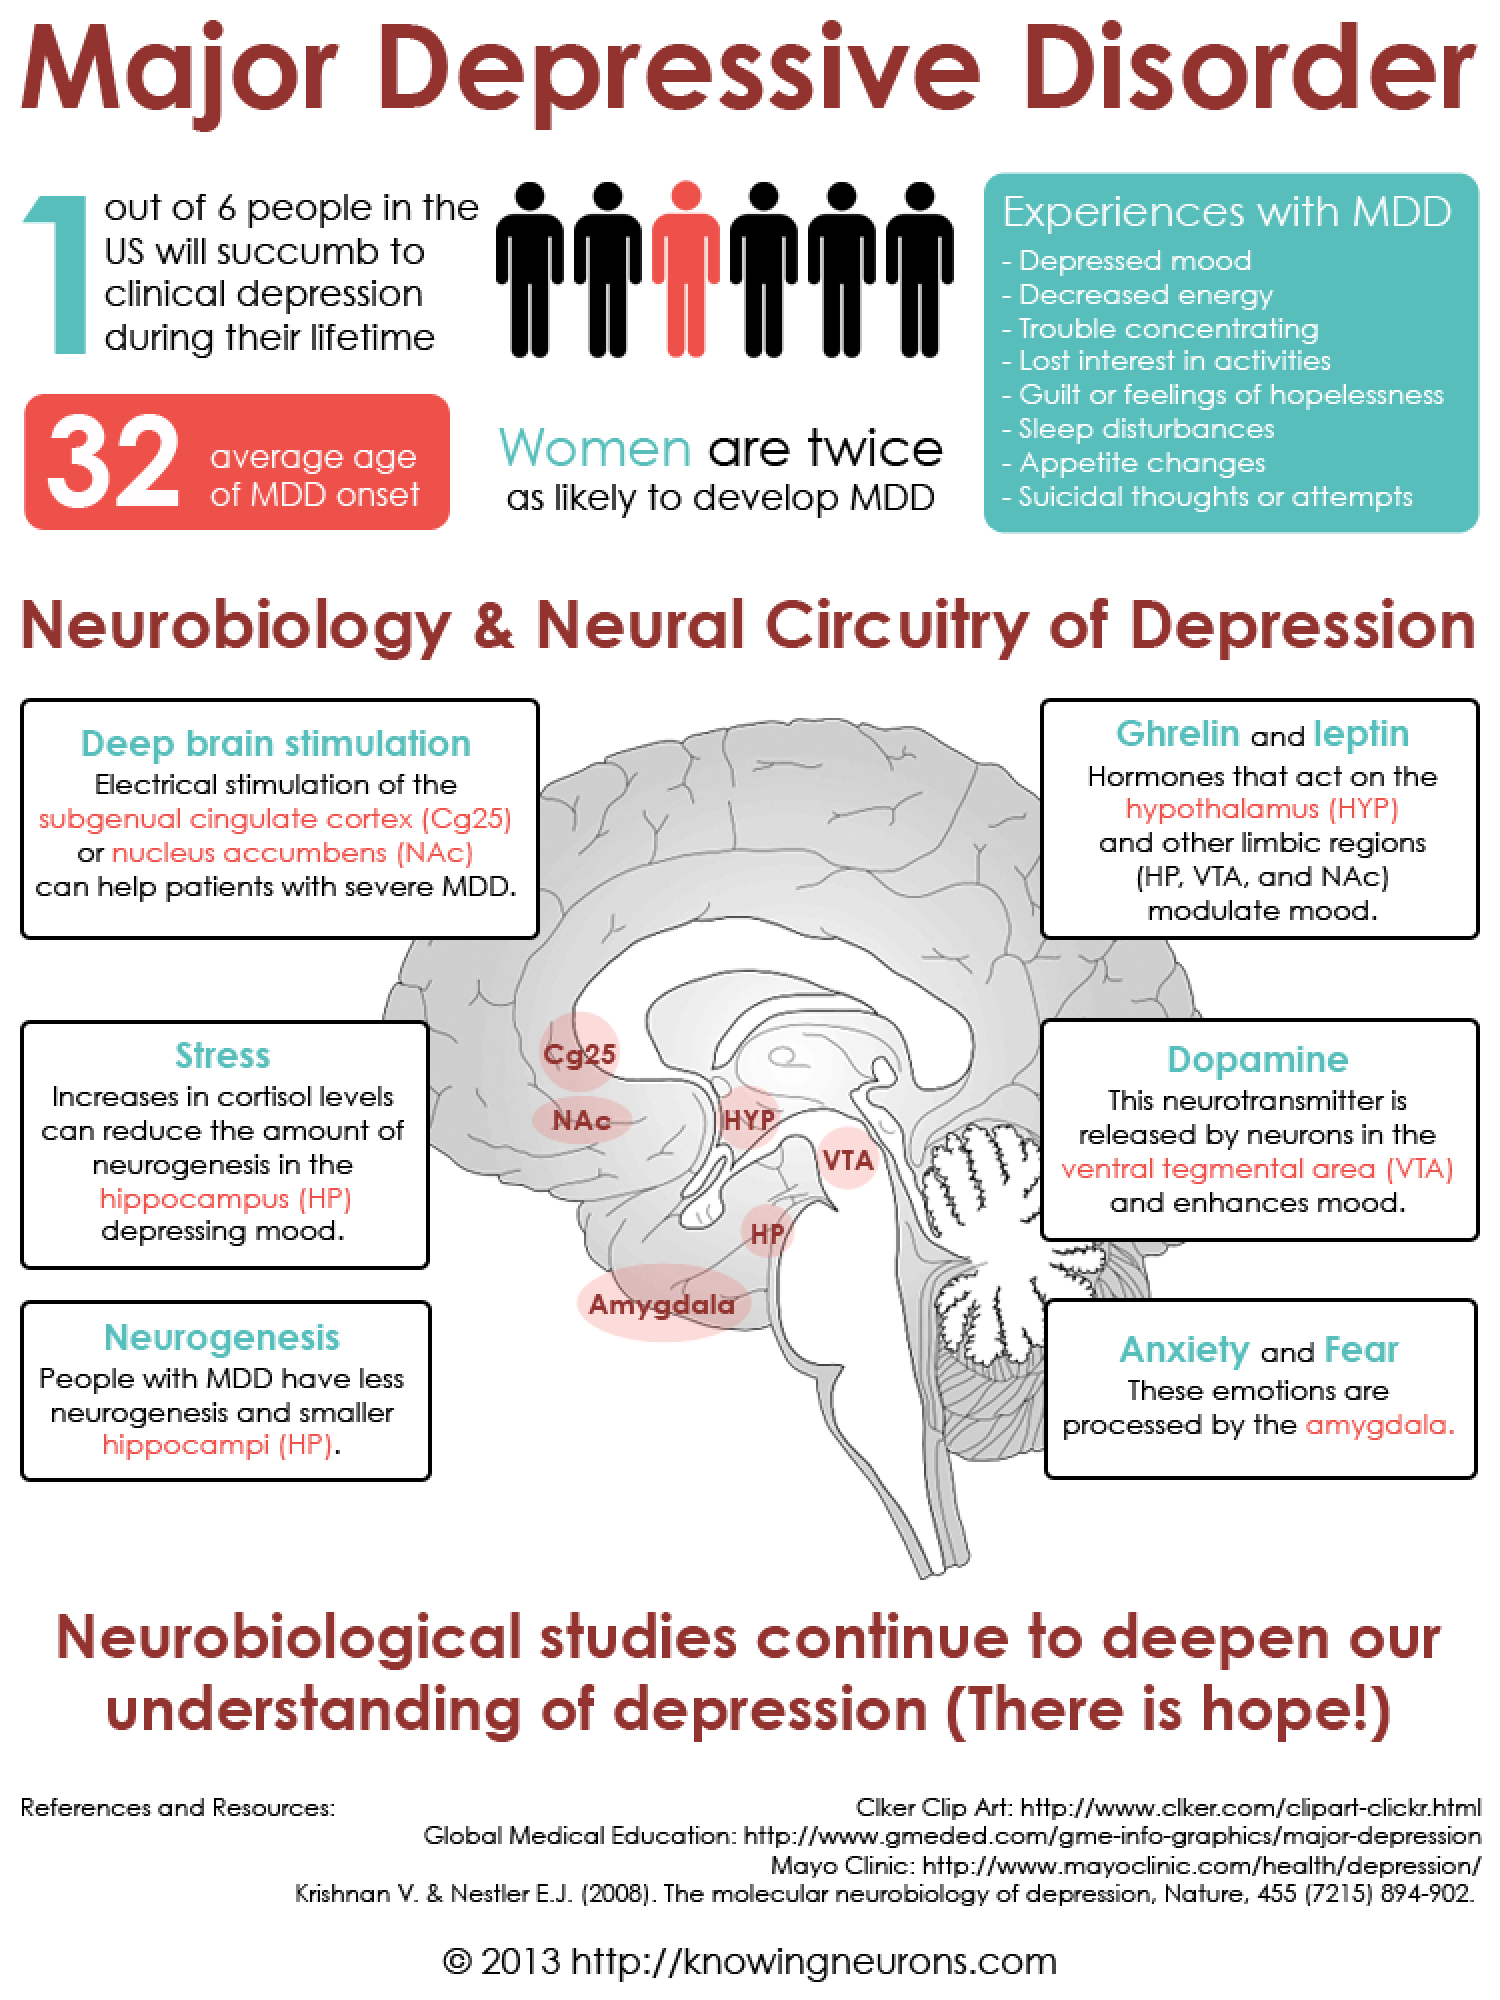 Neurobiology and Neural Circuitry of Depression Infographic